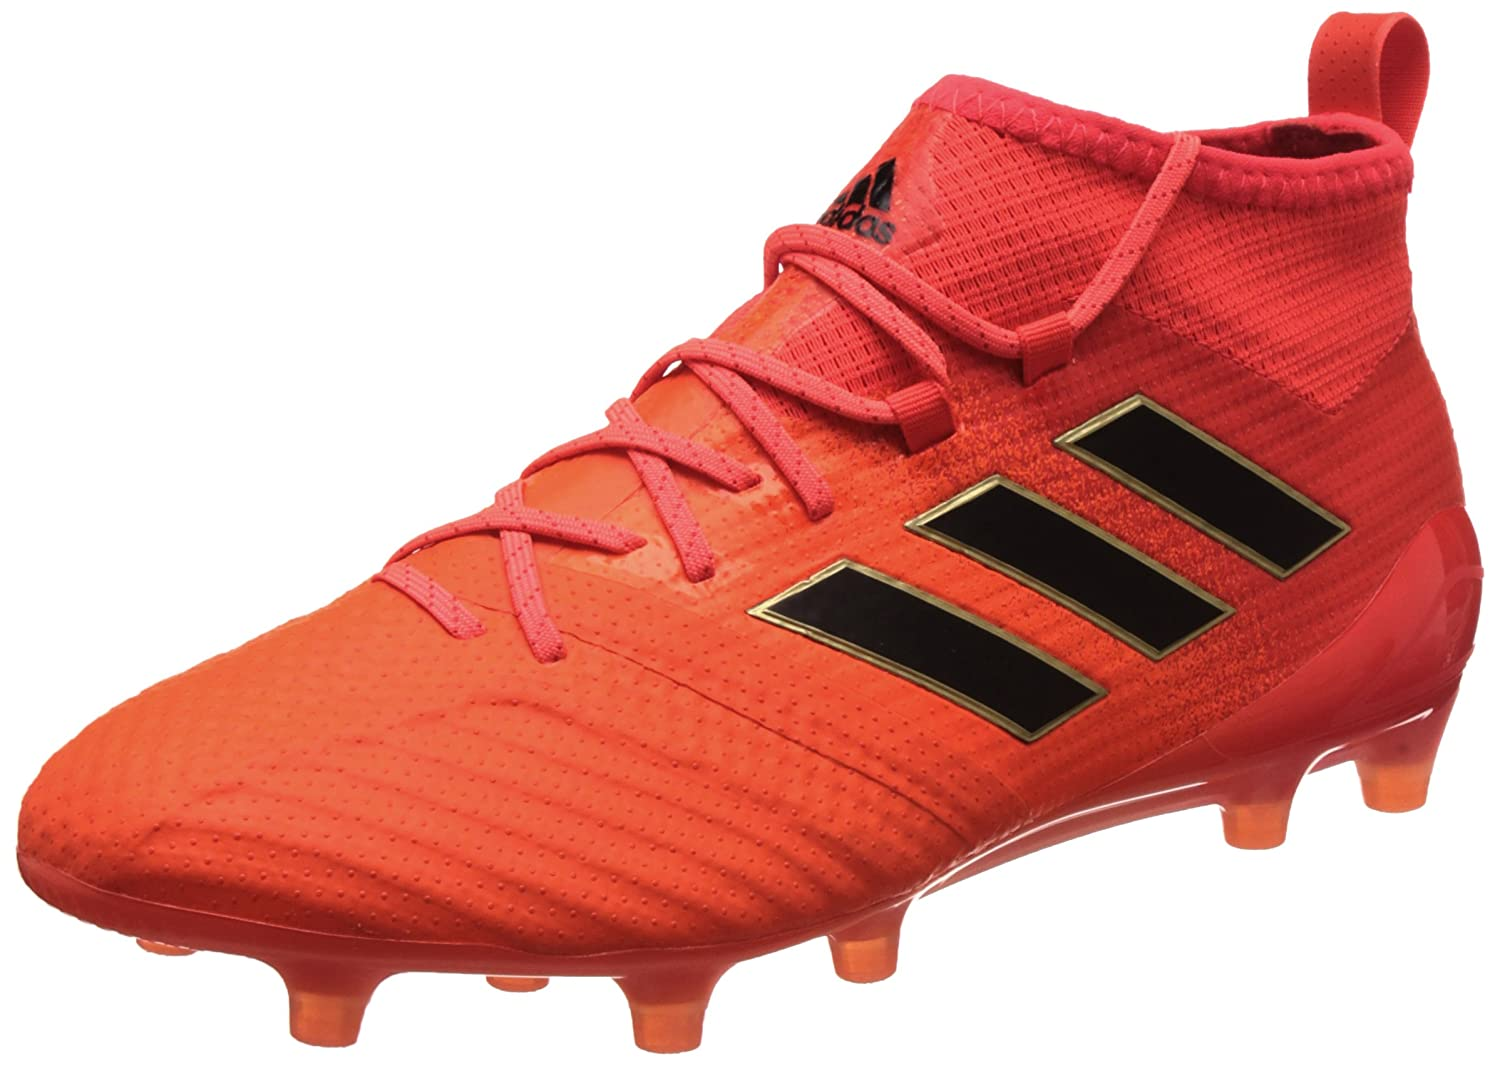 half off eced9 9c886 adidas Ace 17.1 FG Mens Firm Ground Soccer Boots/Cleats